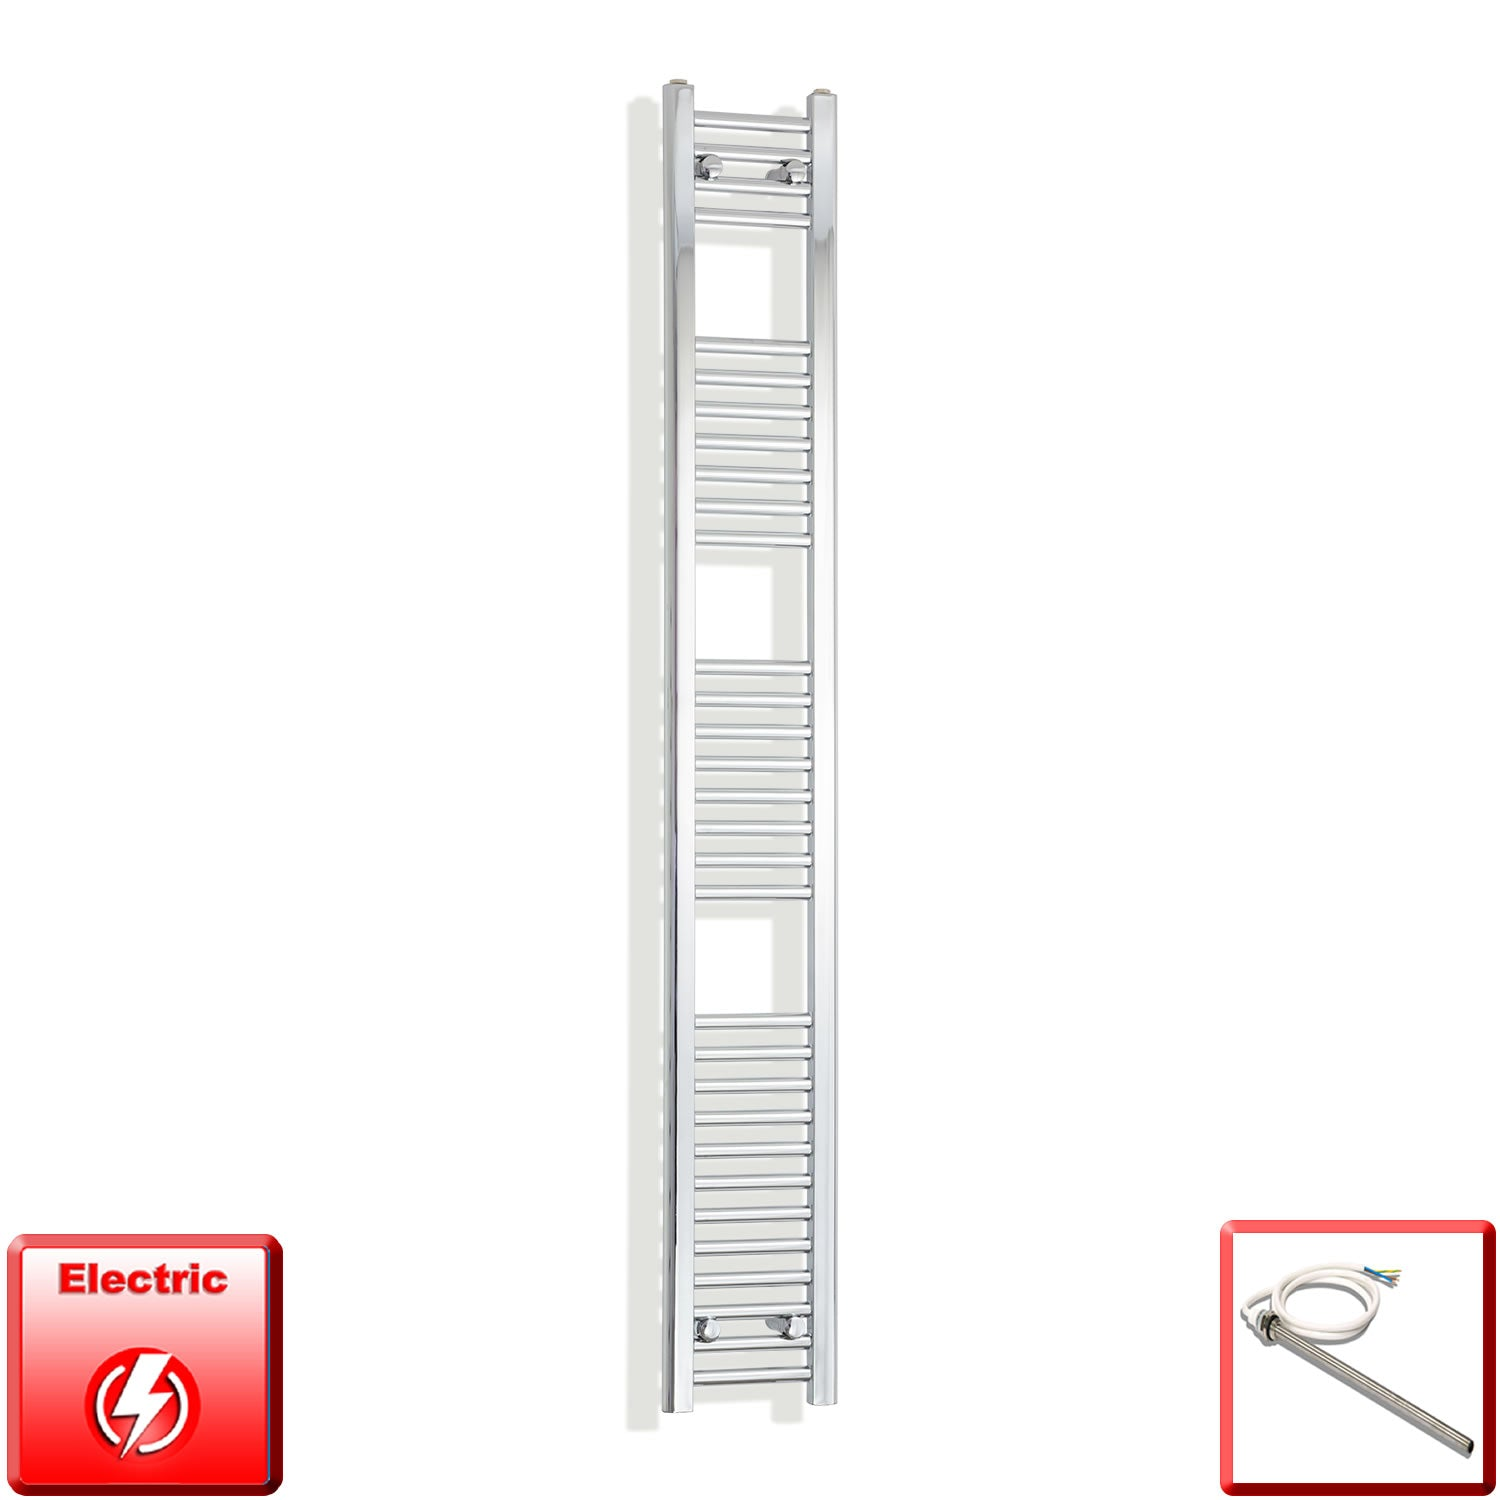 250mm Wide 1800mm High Pre-Filled Chrome Electric Towel Rail Radiator With Single Heat Element